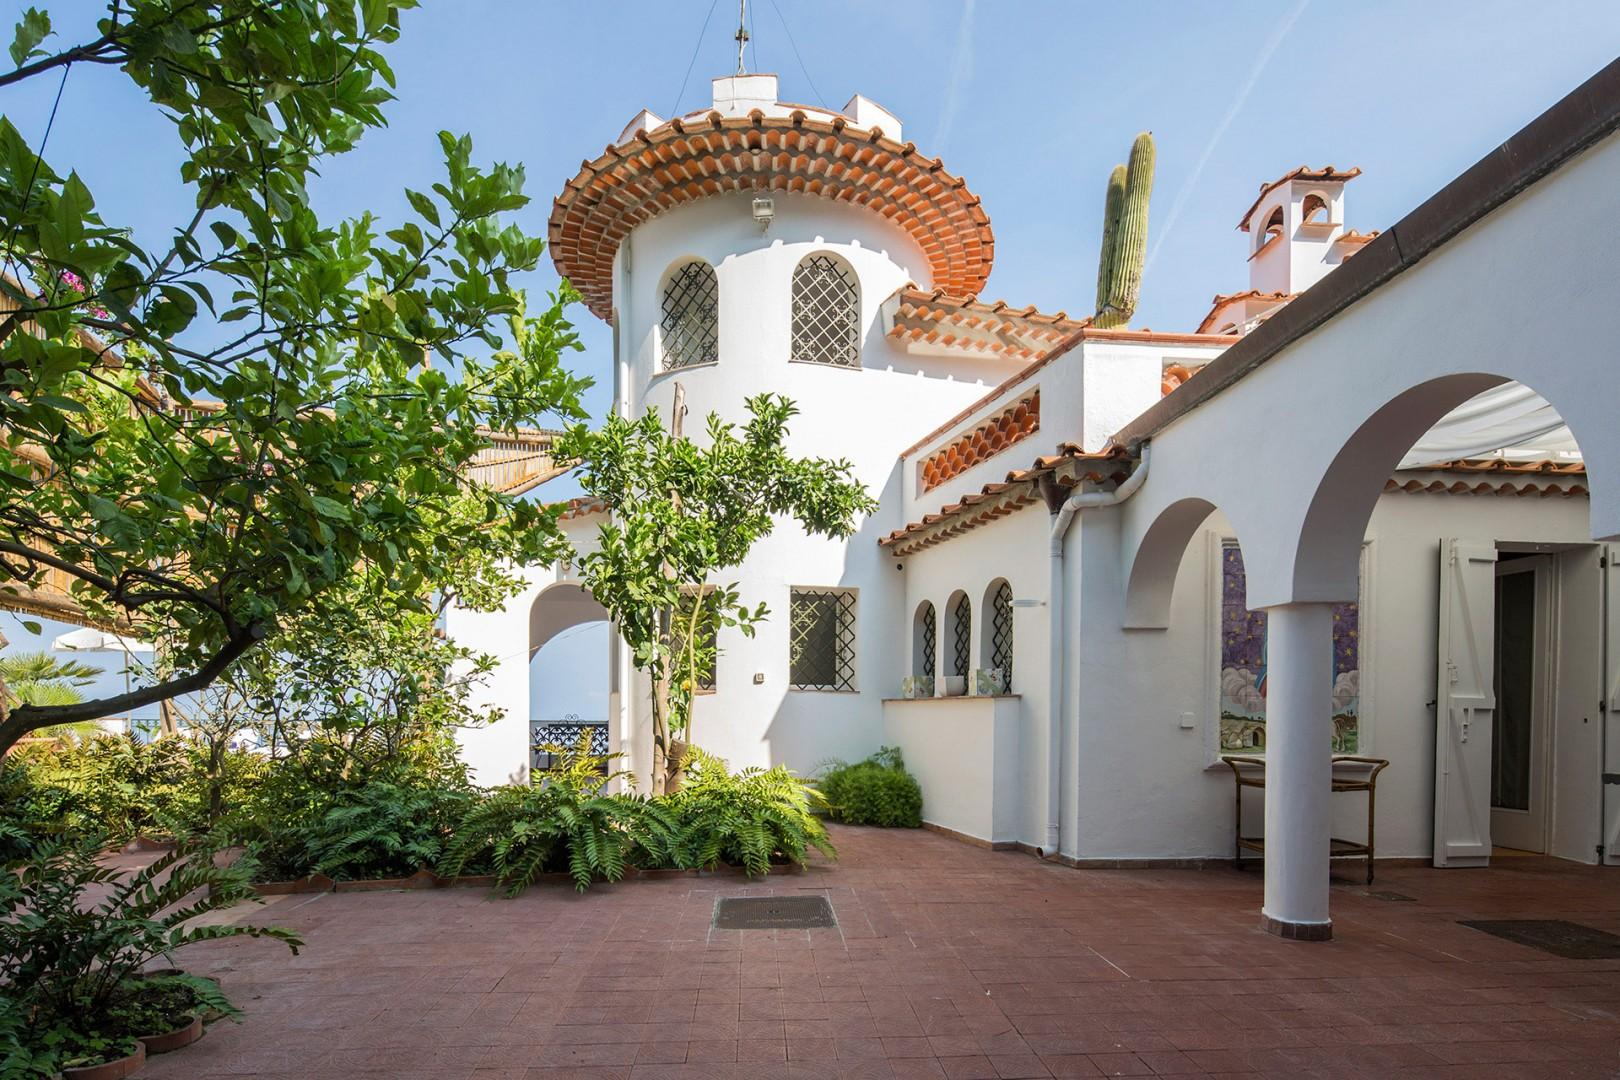 Villa Sole floats between the sky and sea. On 2 levels, it has s tower with sea views all around.